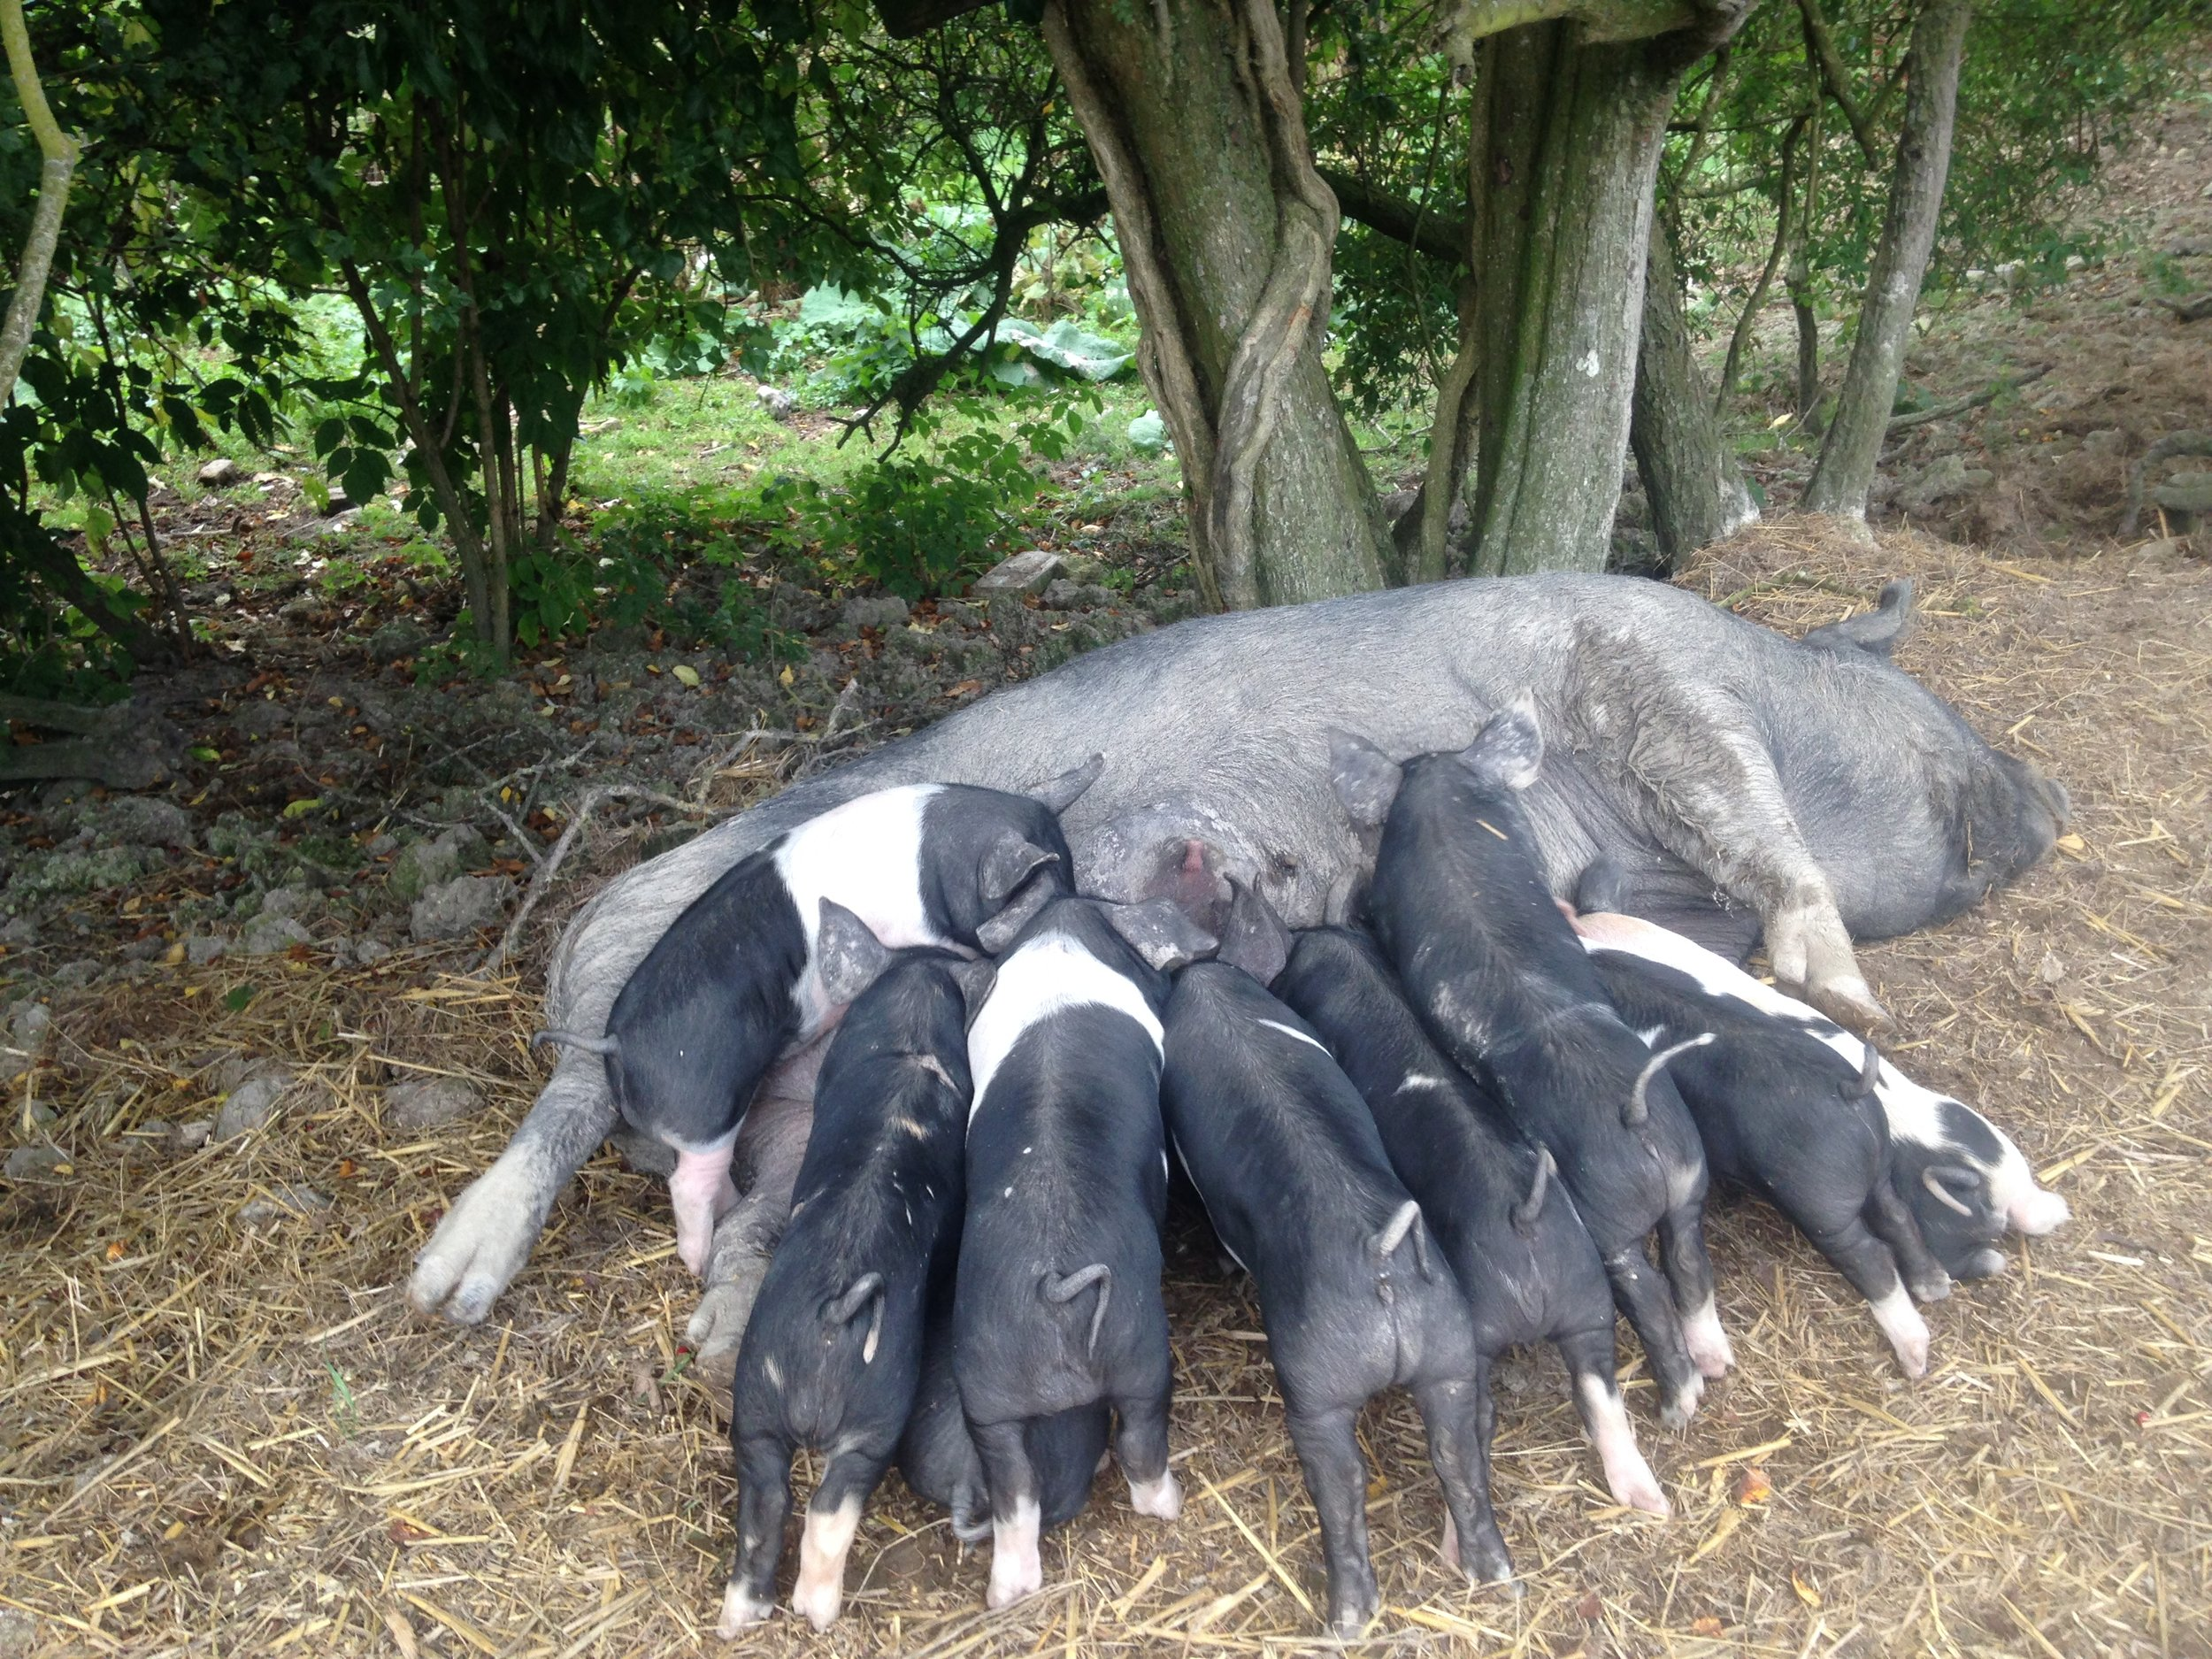 Rare breed pigs at Baulcombes Farm